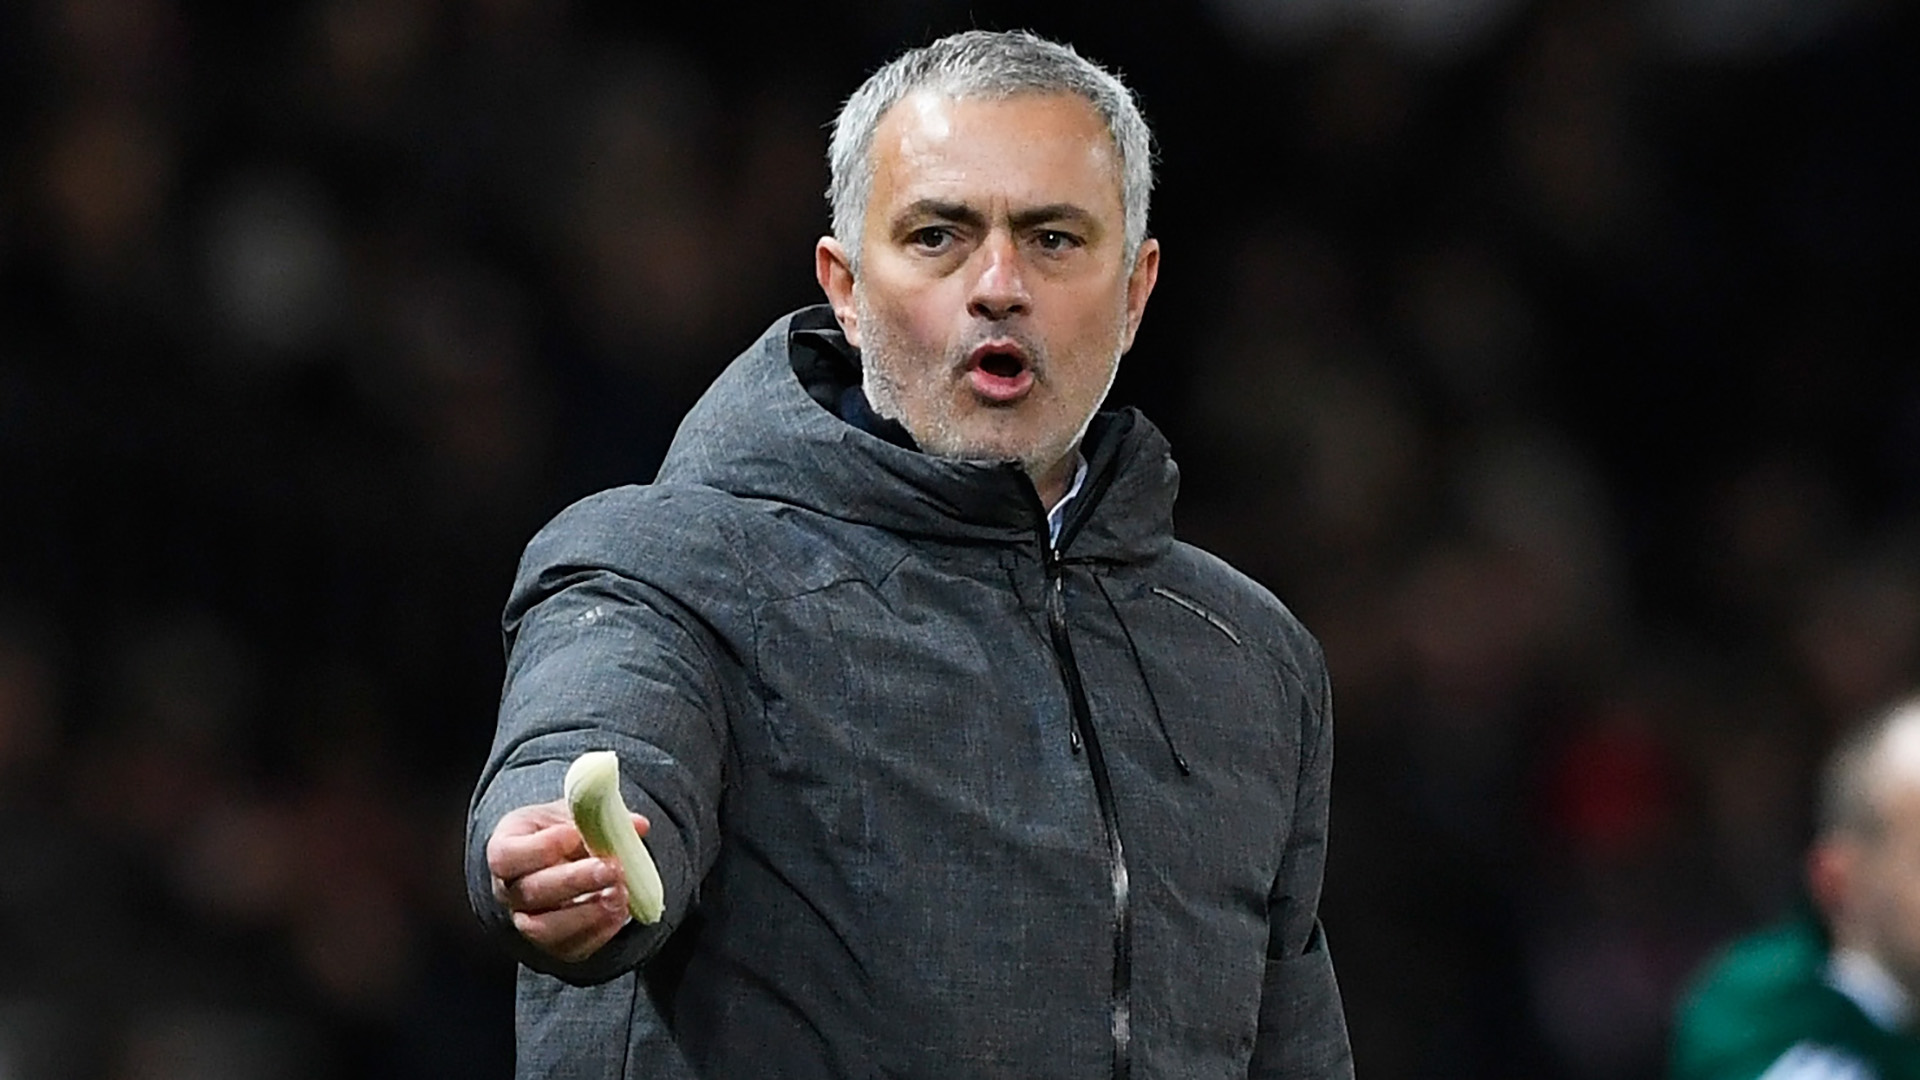 Mourinho claimed in 2015 that he won't take Tottenham job - Bóng Đá